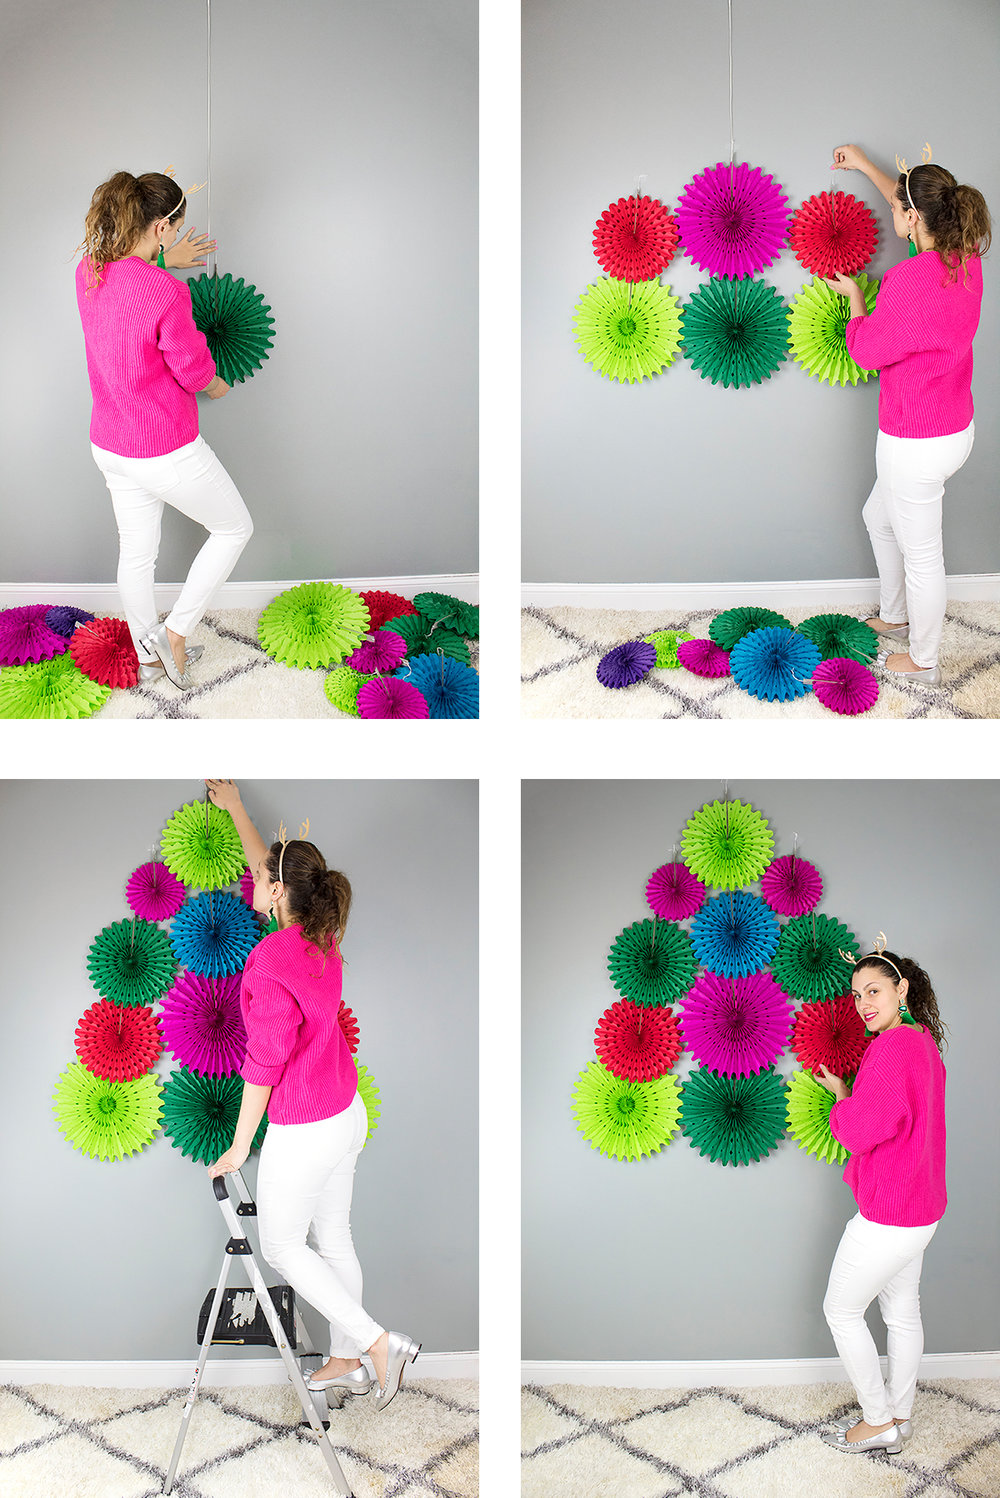 This DIY only takes a few minutes to put up, and it can be used again and again. It would look really cute starting lower and being a photo prop or even as a Christmas tree alternative for a small space.